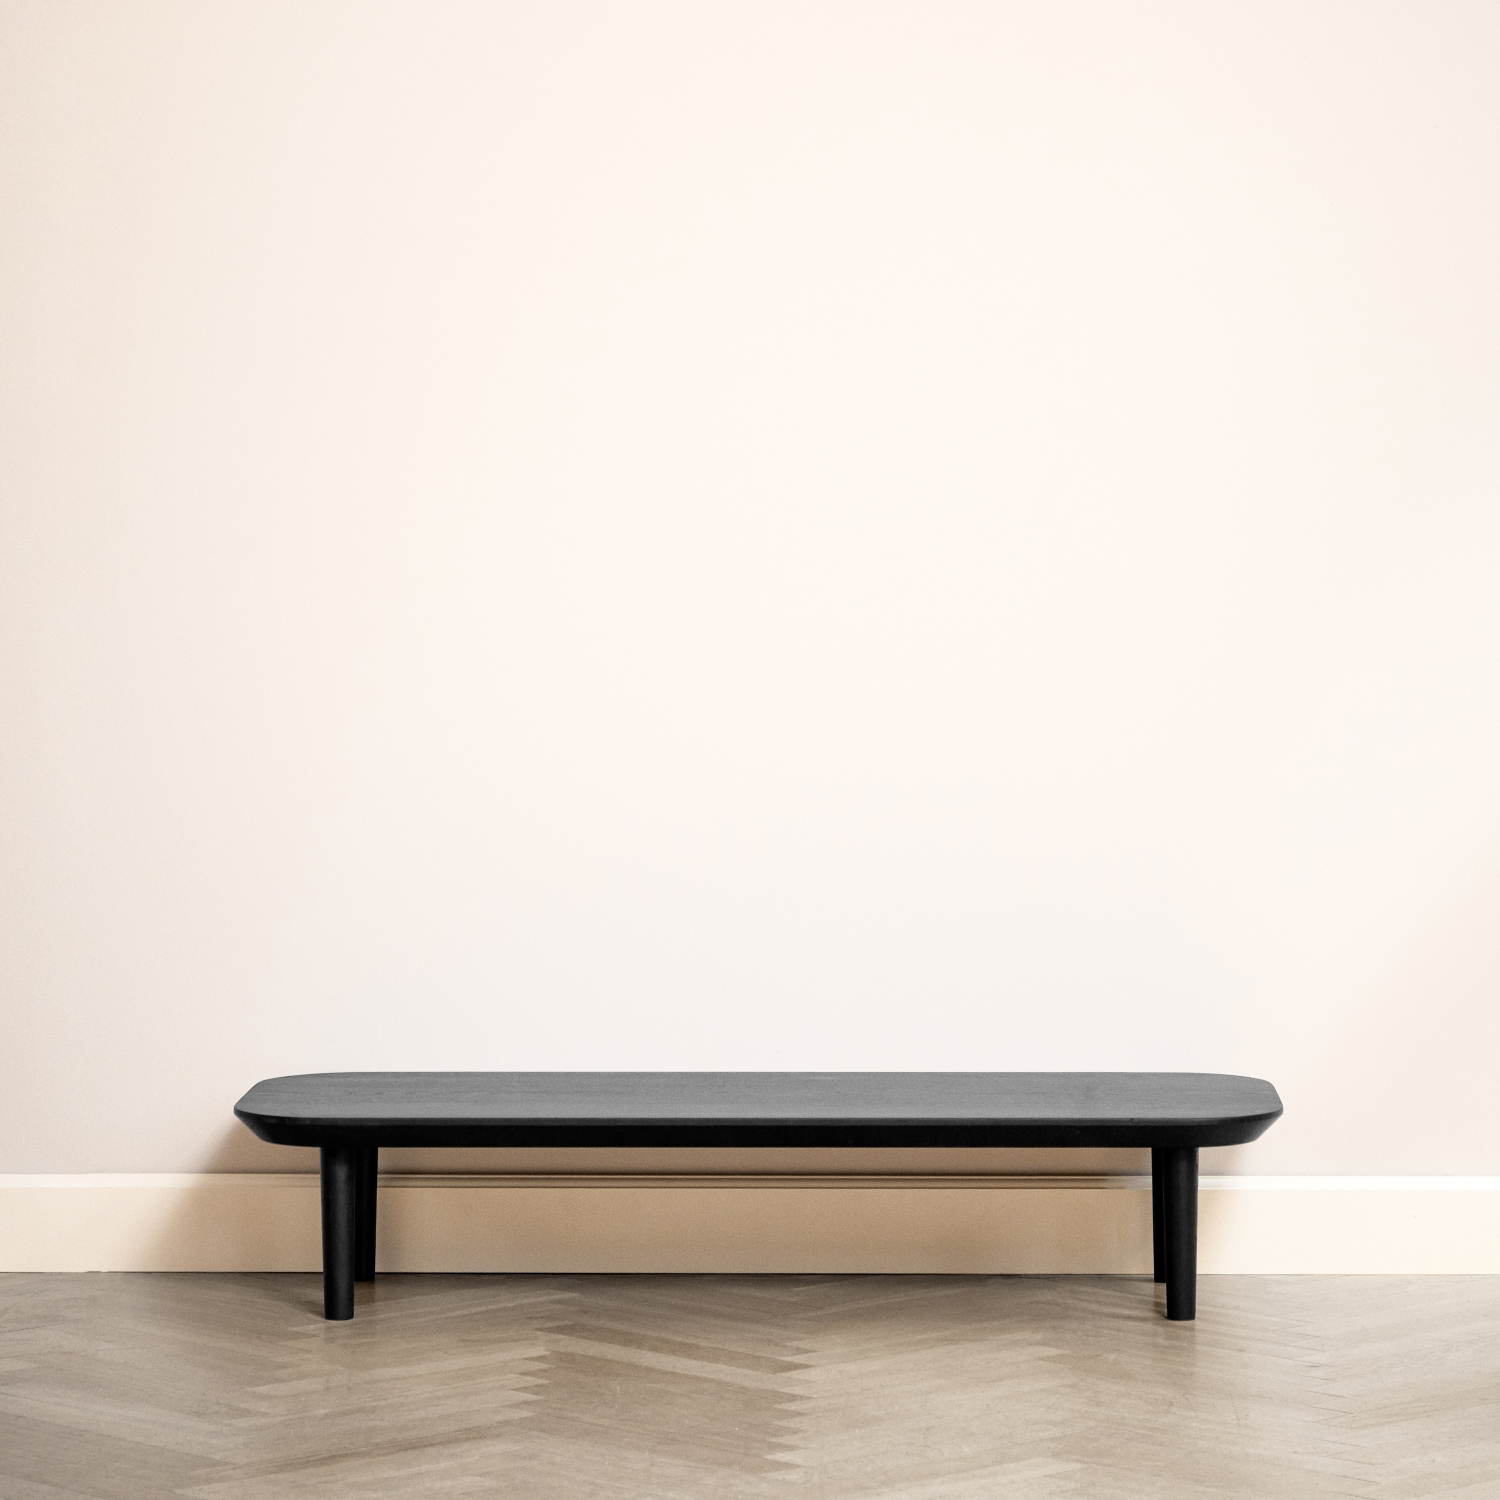 Bord modell T1 Low coffee table, Lindebjerg Design